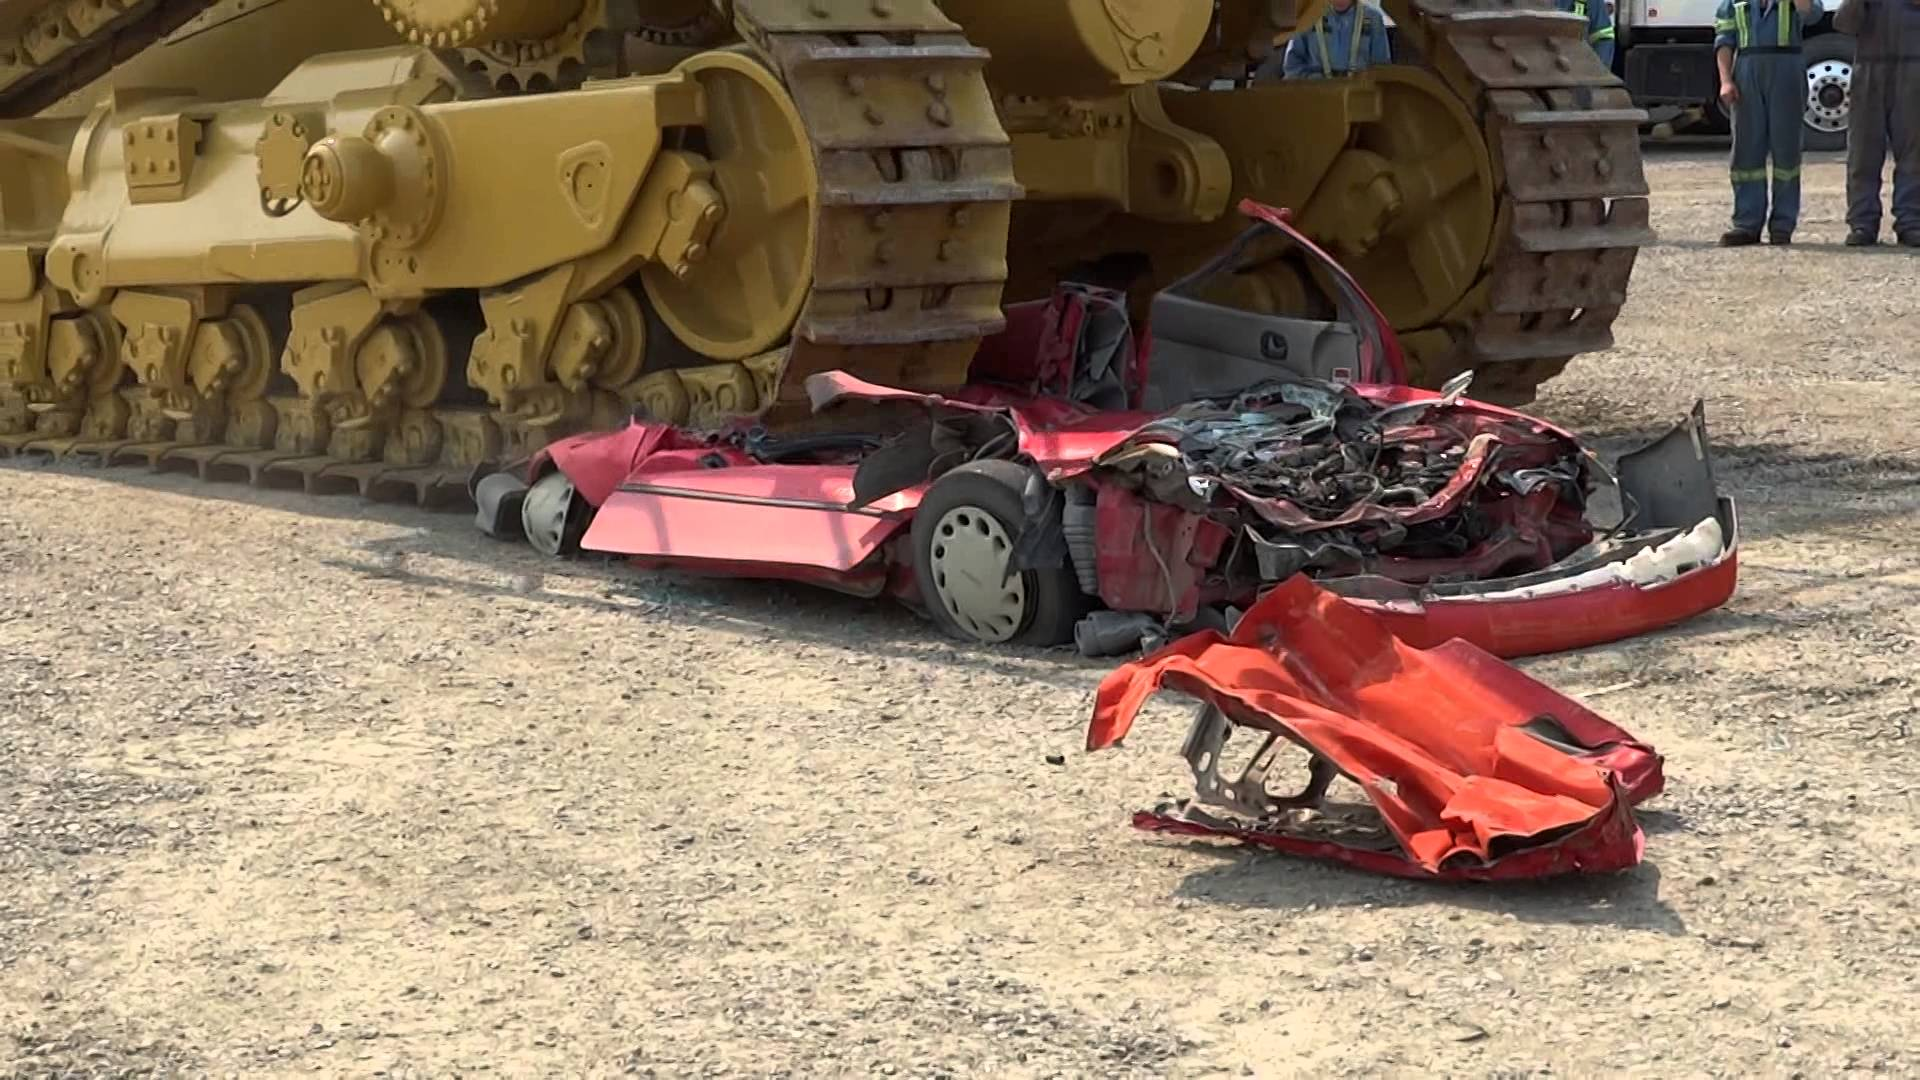 Pontiac Firefly Meets Death Via Caterpillar D11 Buldozer